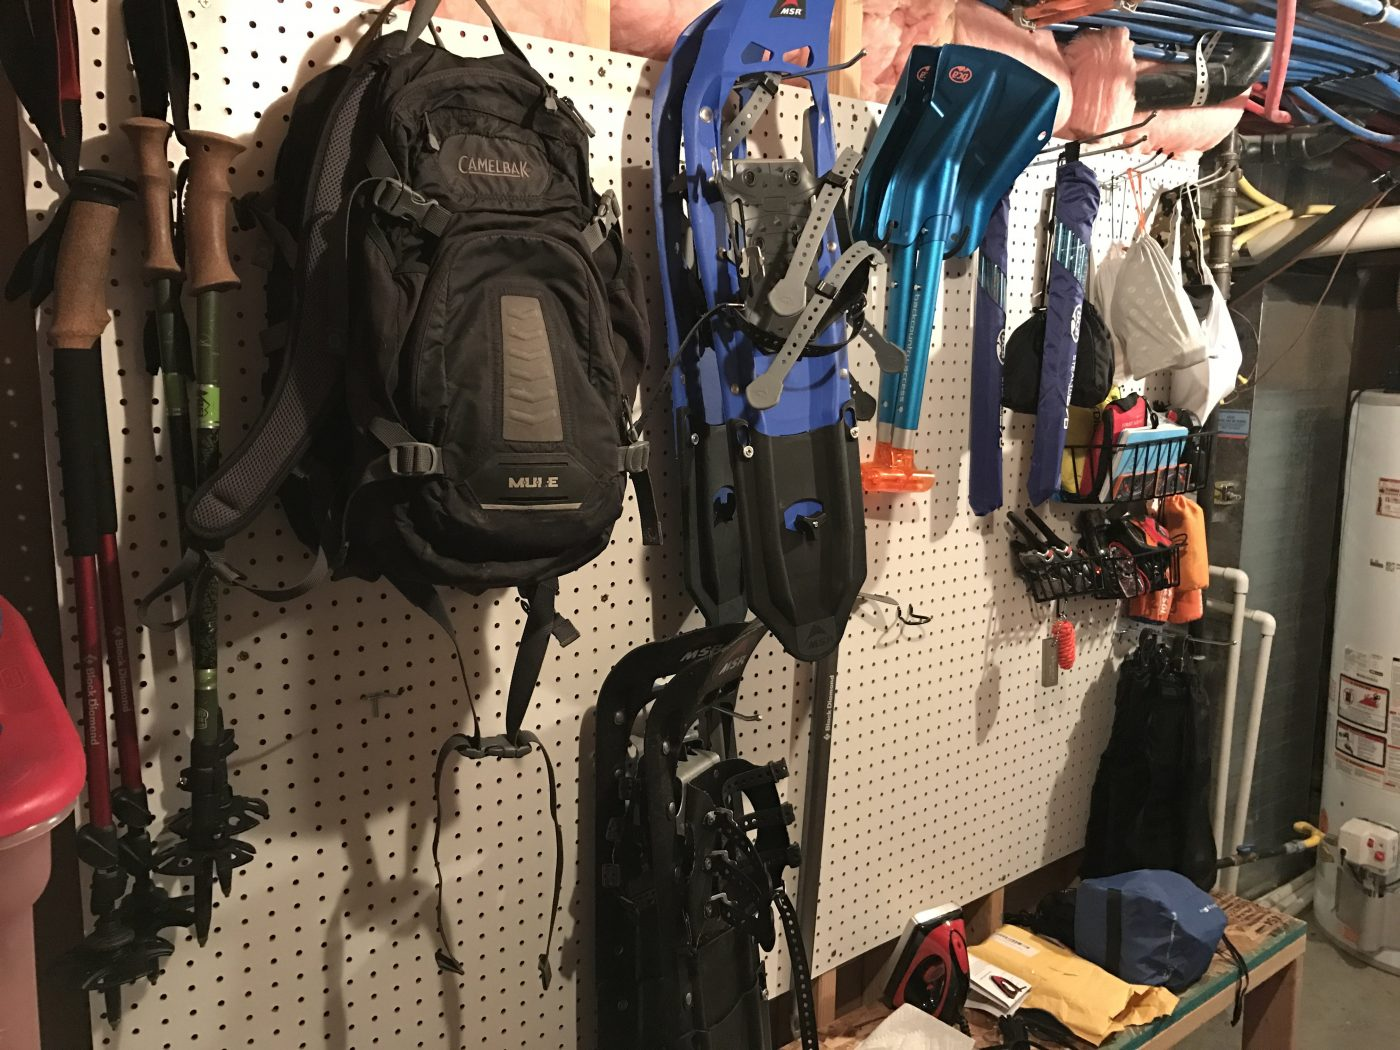 Gear Organized! I Hope You Enjoyed This Build Your Own Outdoor Gear Closet  Tutorial. With A Little Elbow Grease, Itu0027s Simple To Create The DIY Gear  Closet ...